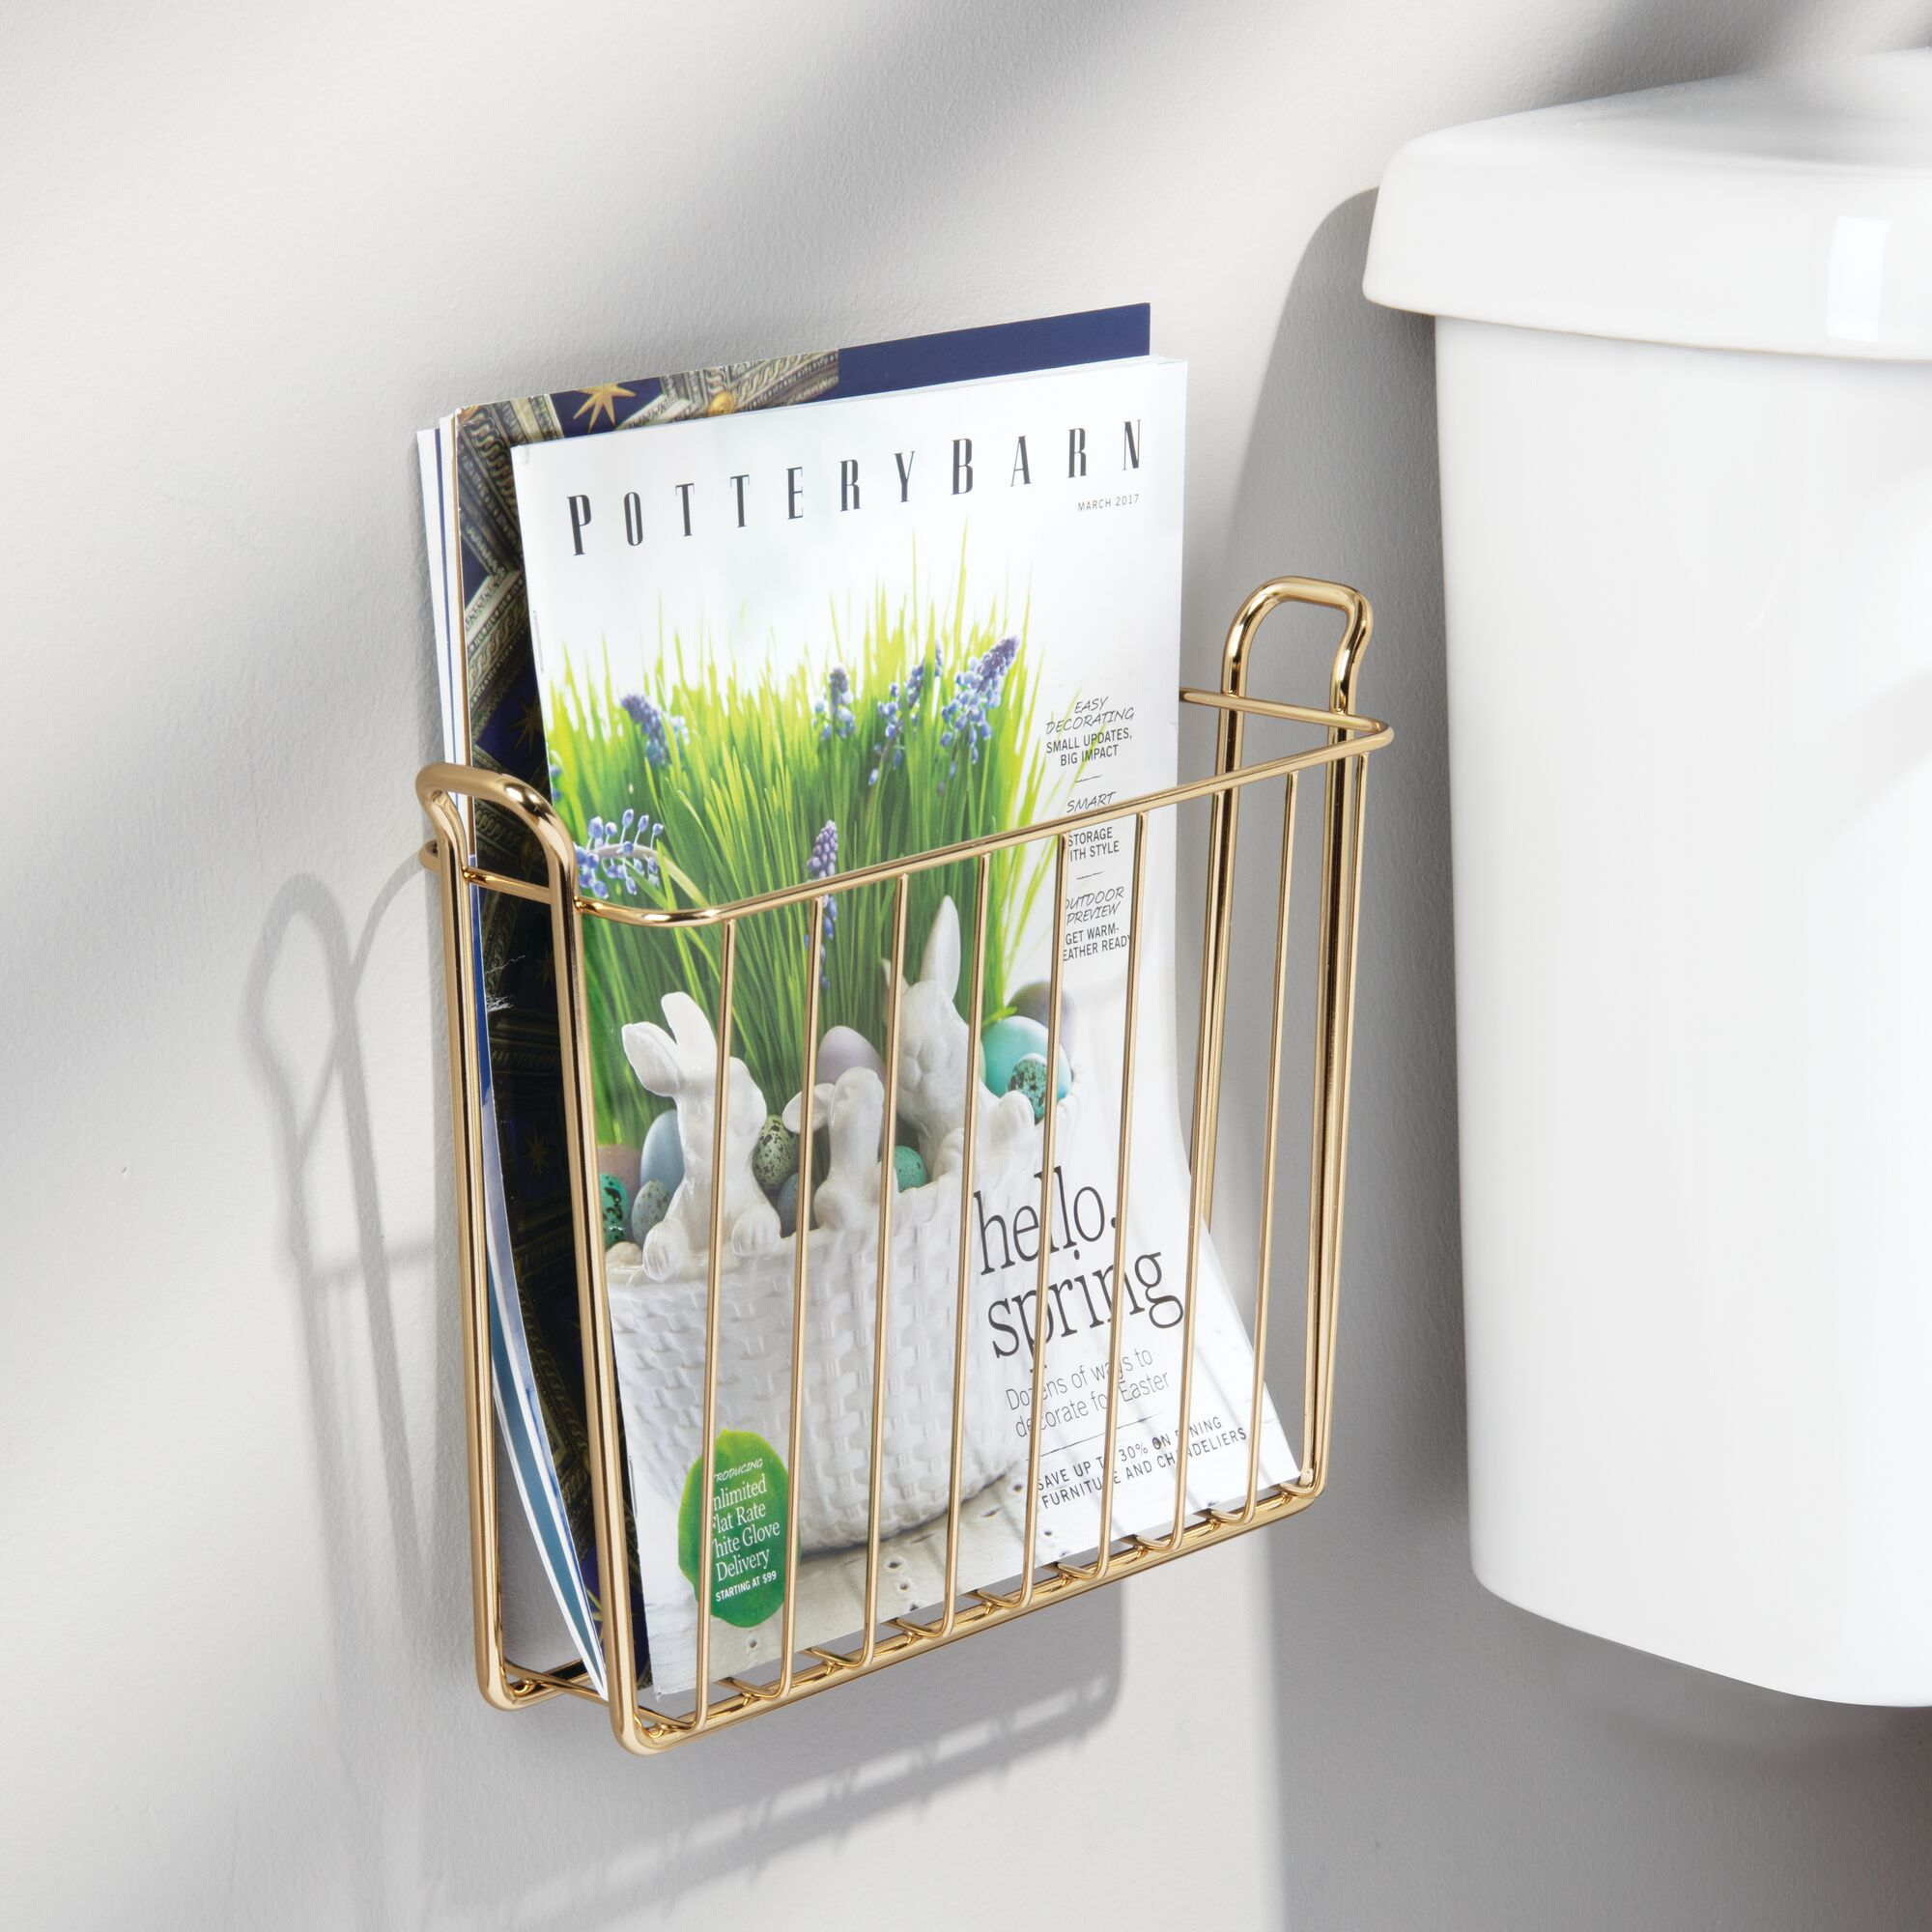 mDesign-Metal-Wall-Mount-Magazine-Book-Holder-Compact-Rack thumbnail 62